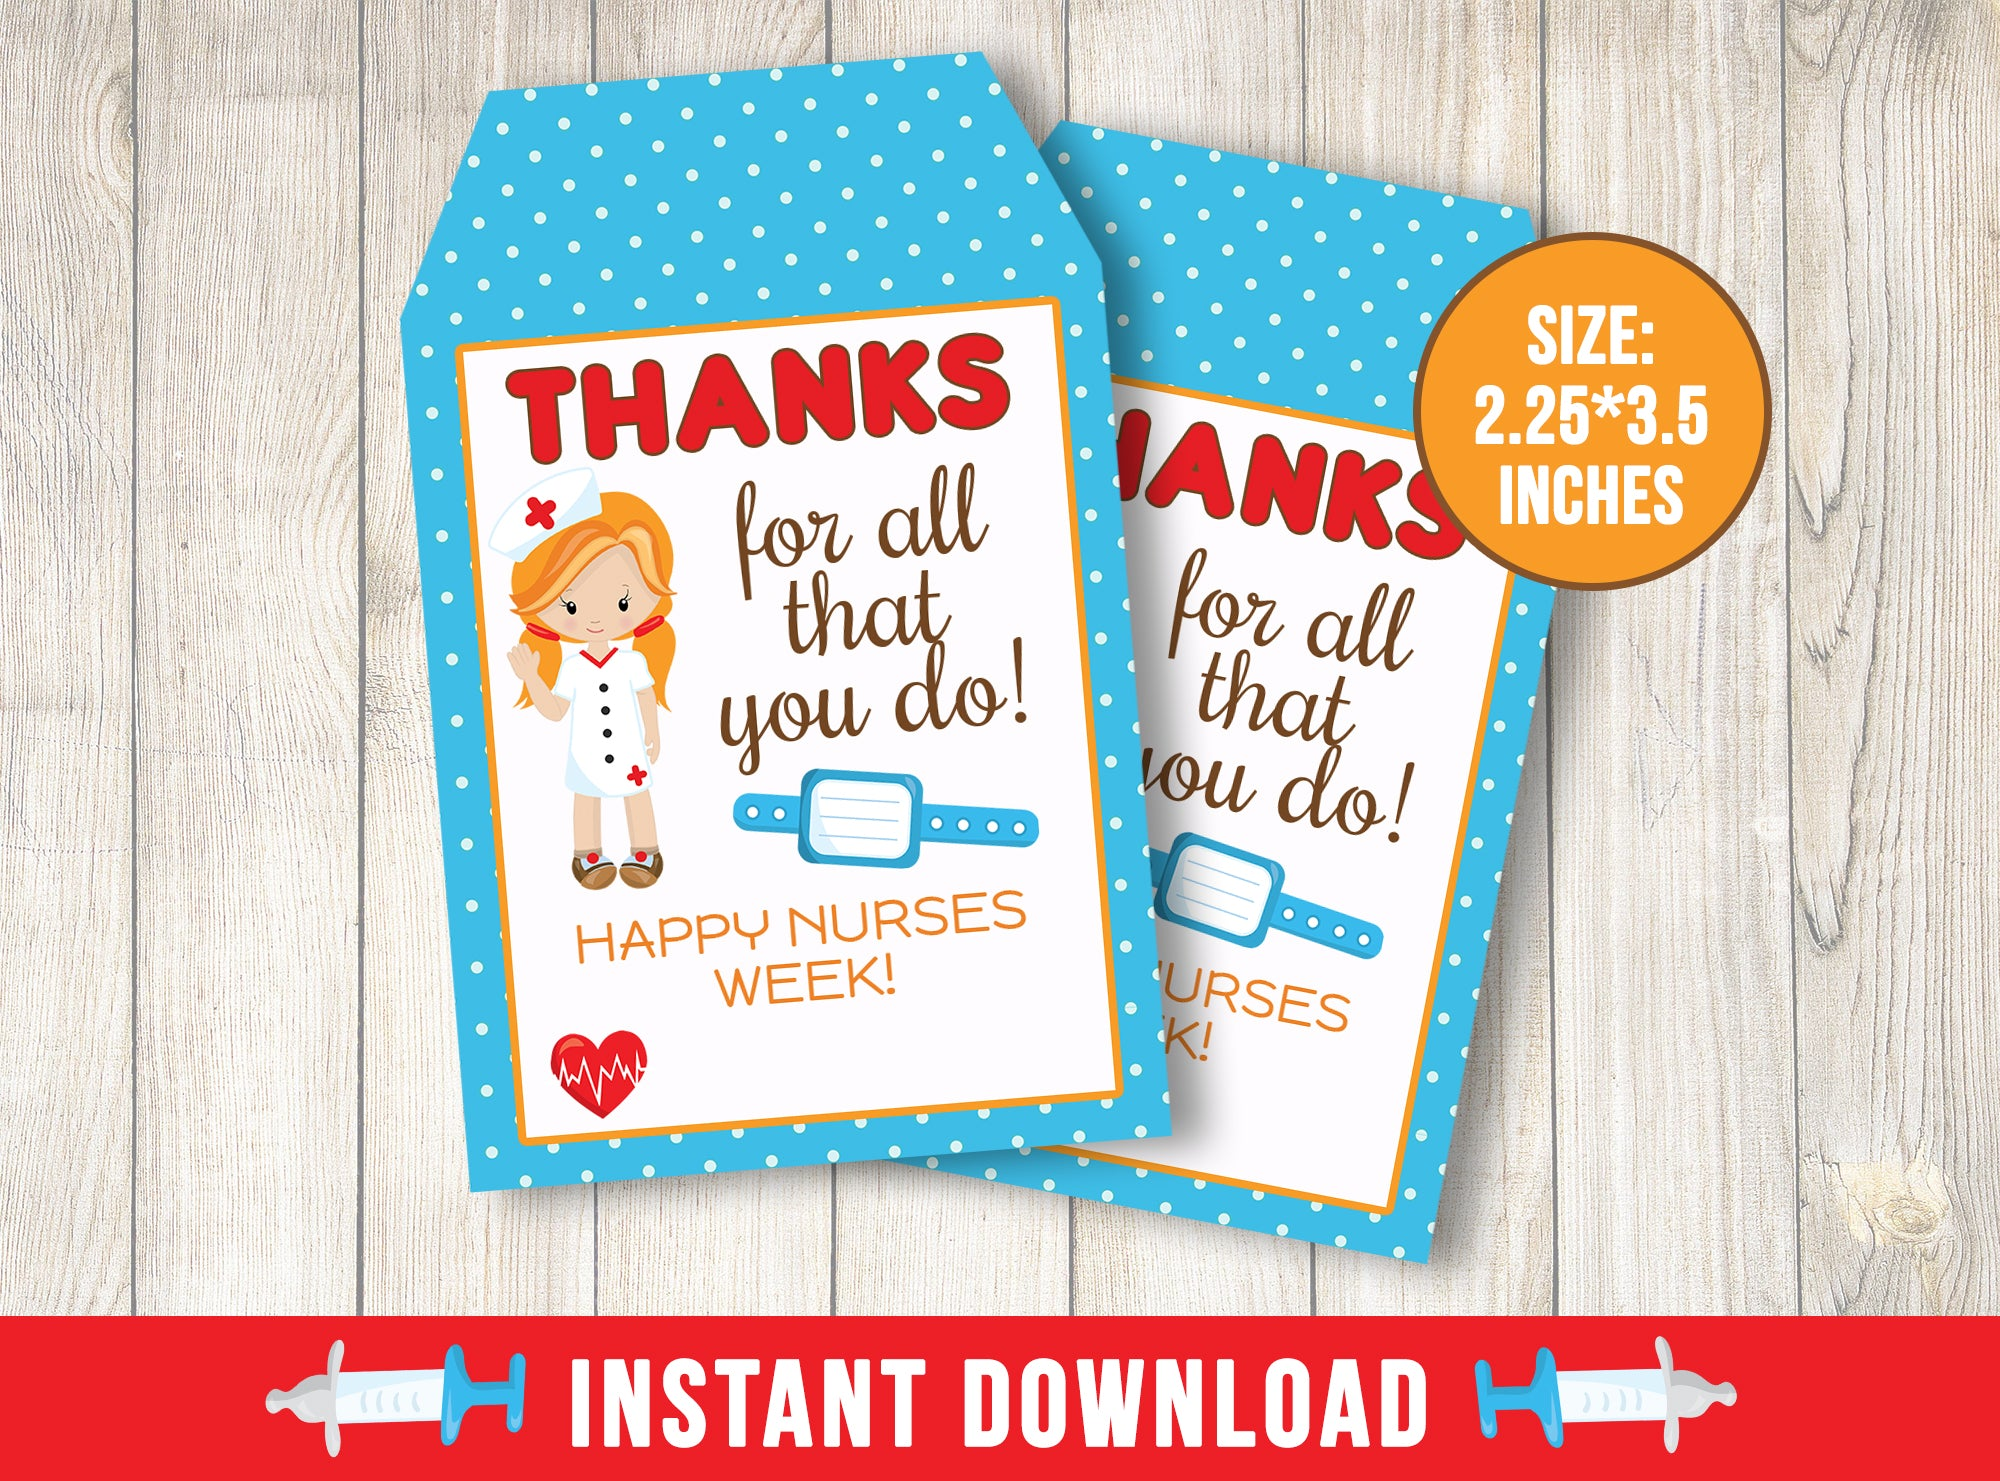 Nurse Appreciation Day Card, Healthcare Heroes Thank You Gift Tags, Doctor, Hospital, Medical INSTANT DOWNLOAD - TitaTipsPrintables